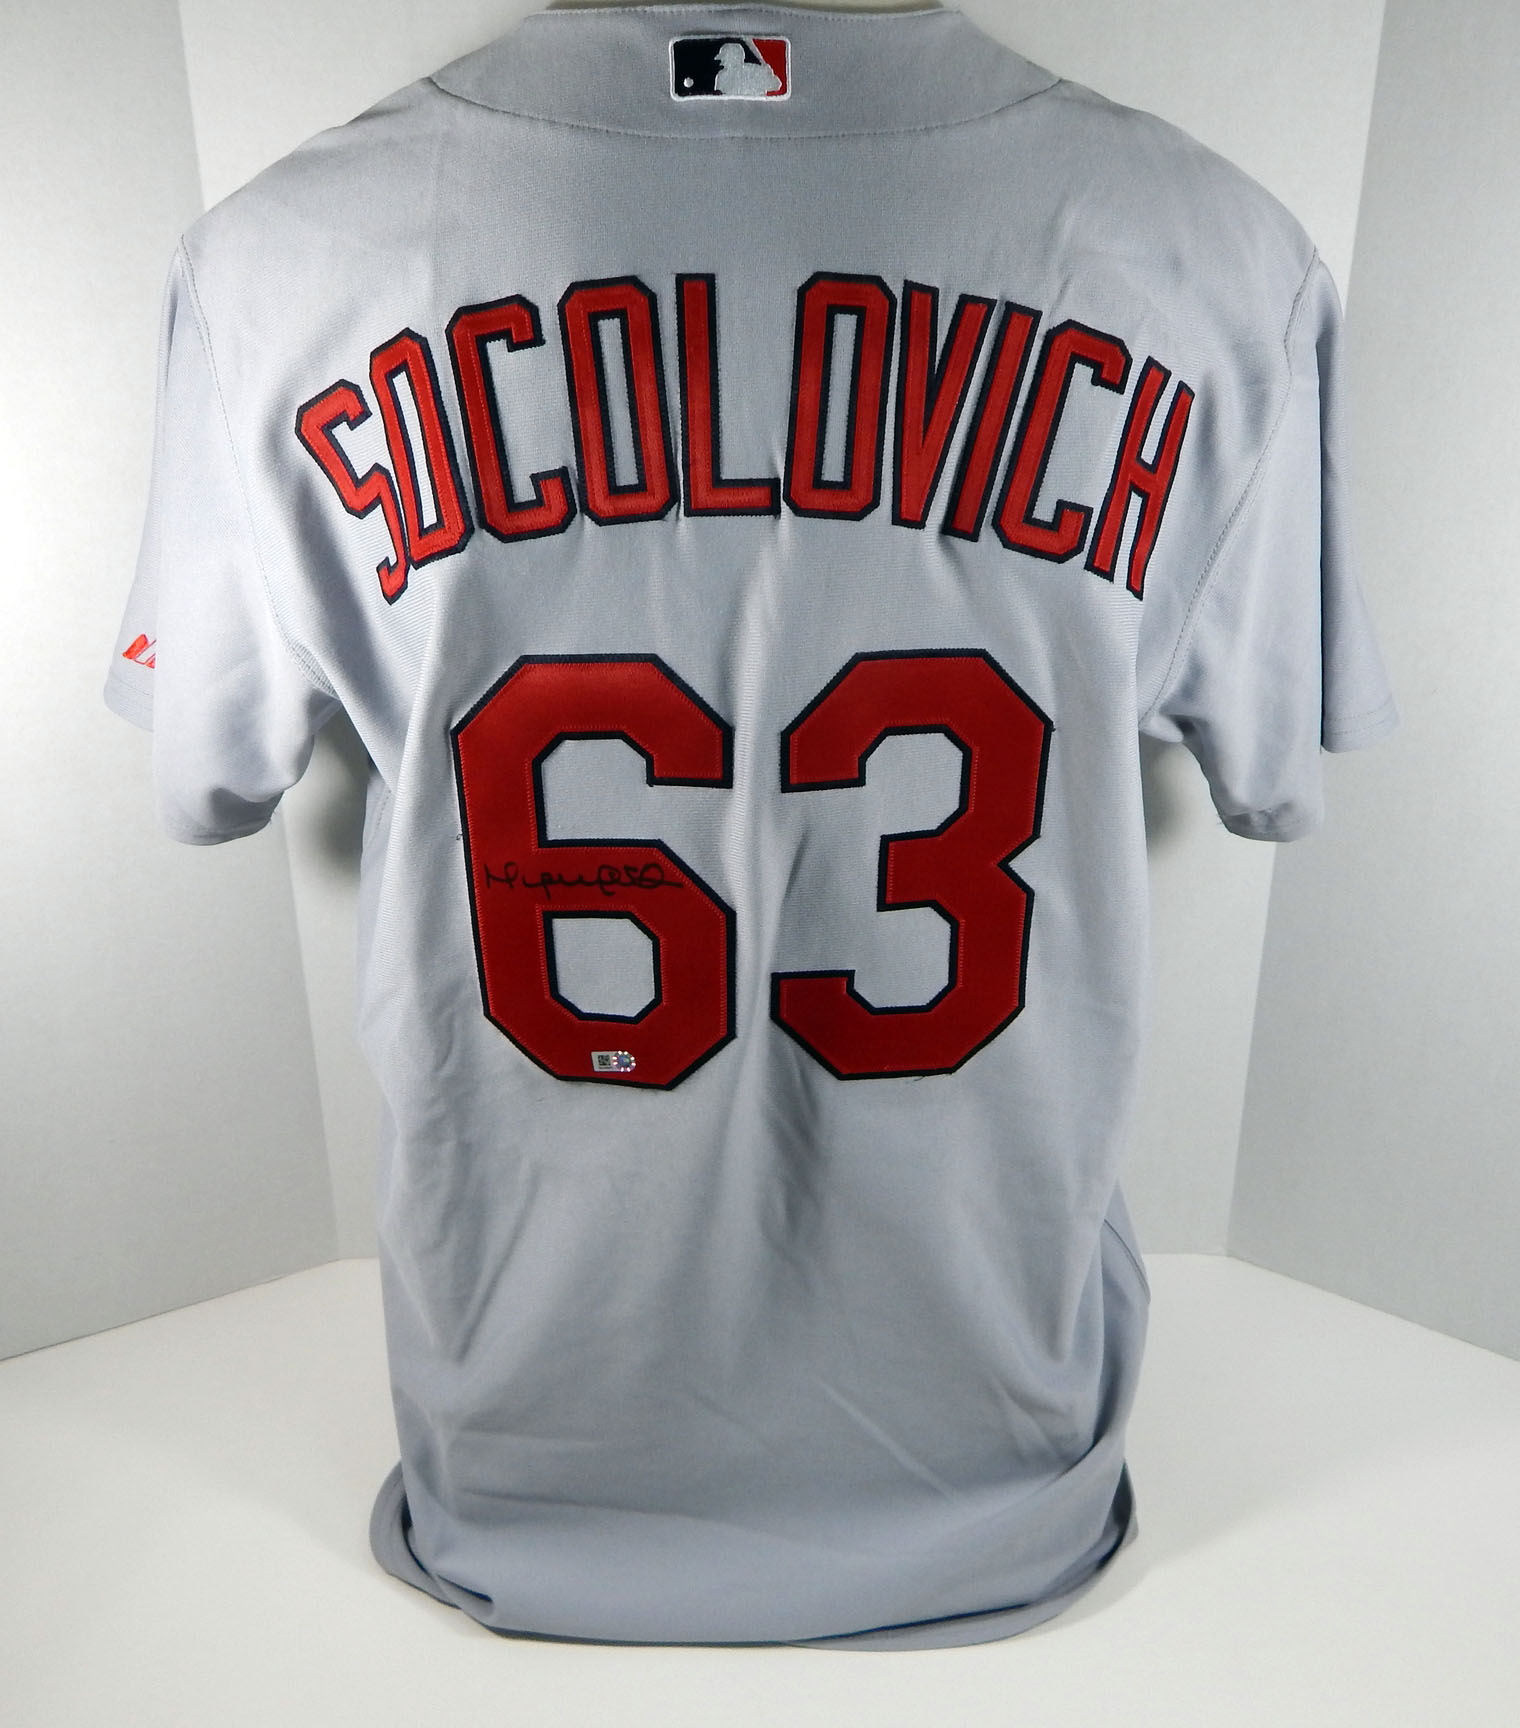 big sale 2e218 a59a4 Details about 2009 St. Louis Cardinals Miguel Socolovich #63 Game Issued  Signed Grey Jersey